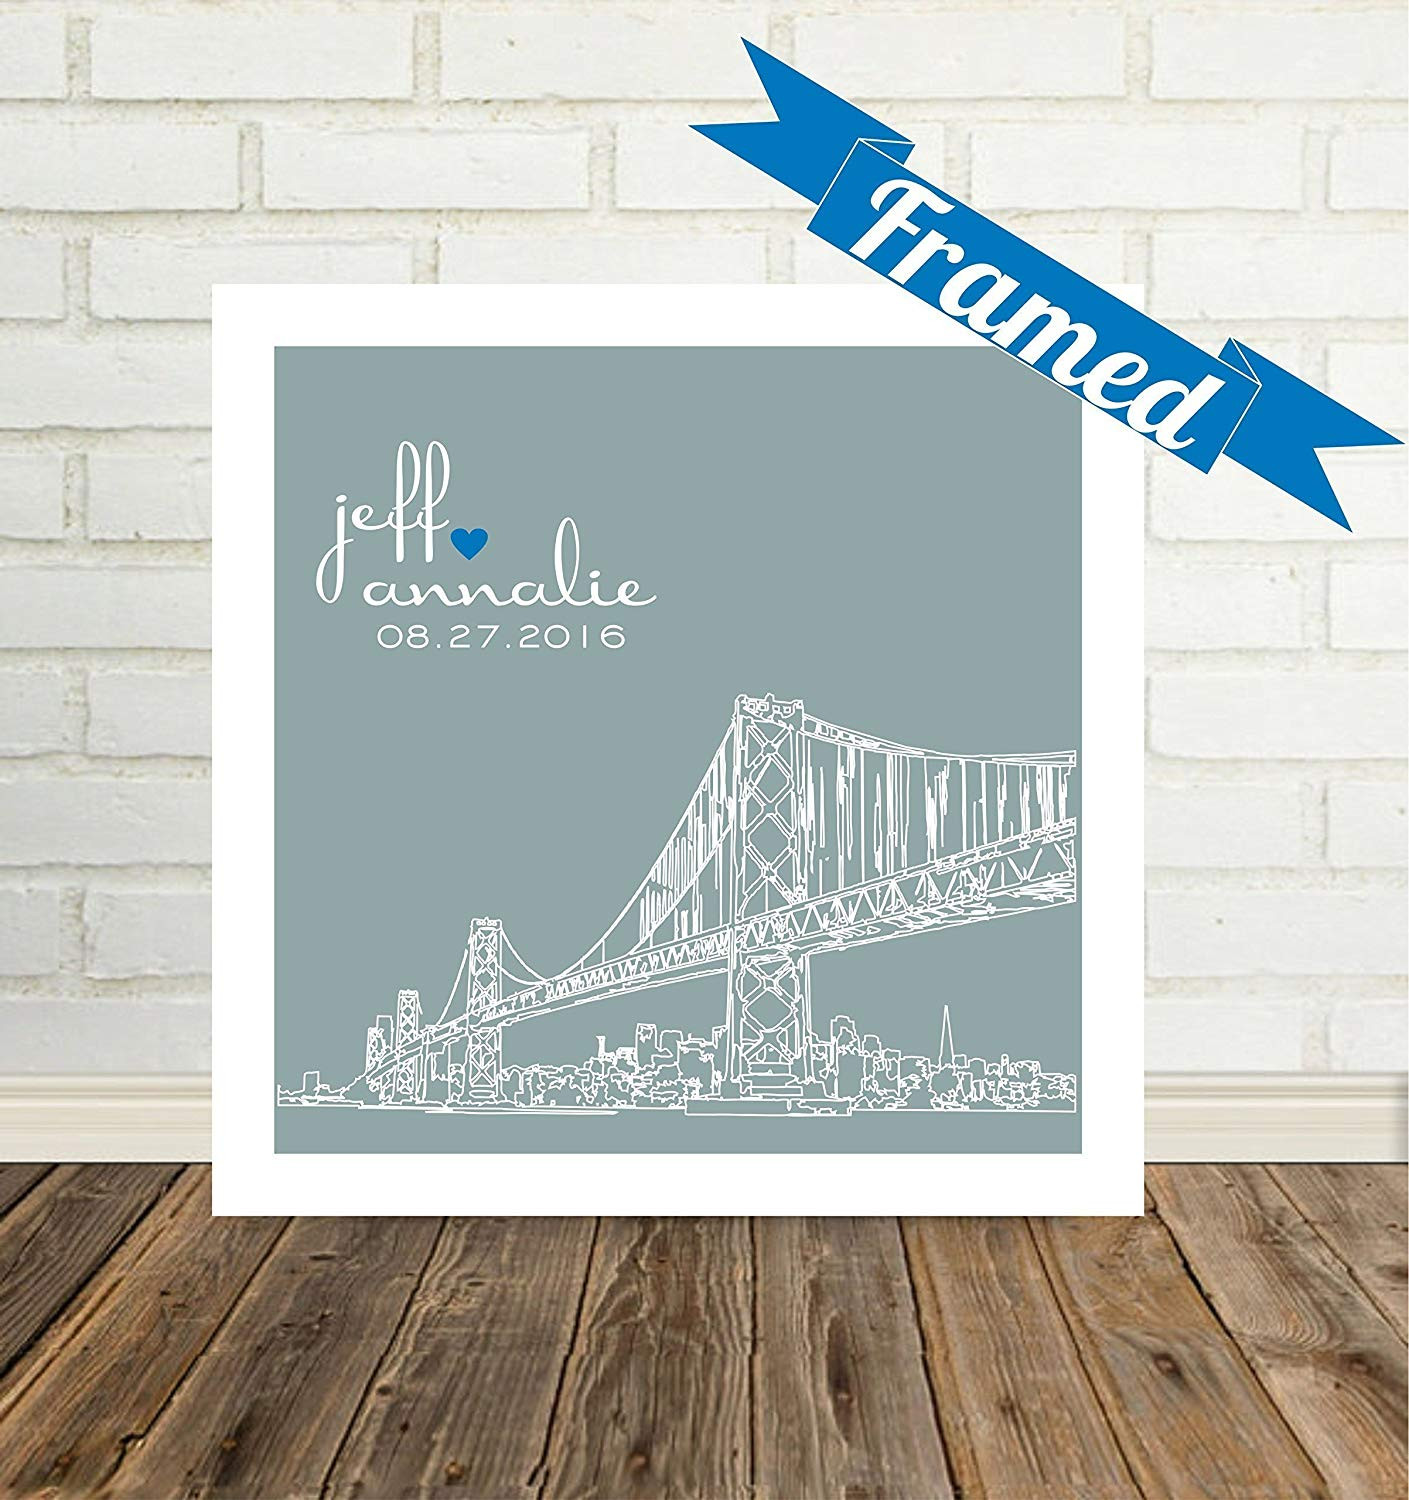 welles hardwood flooring reviews of amazon com personalized wedding gift framed art san francisco pertaining to amazon com personalized wedding gift framed art san francisco skyline unique wedding gift for couple any city available worldwide handmade